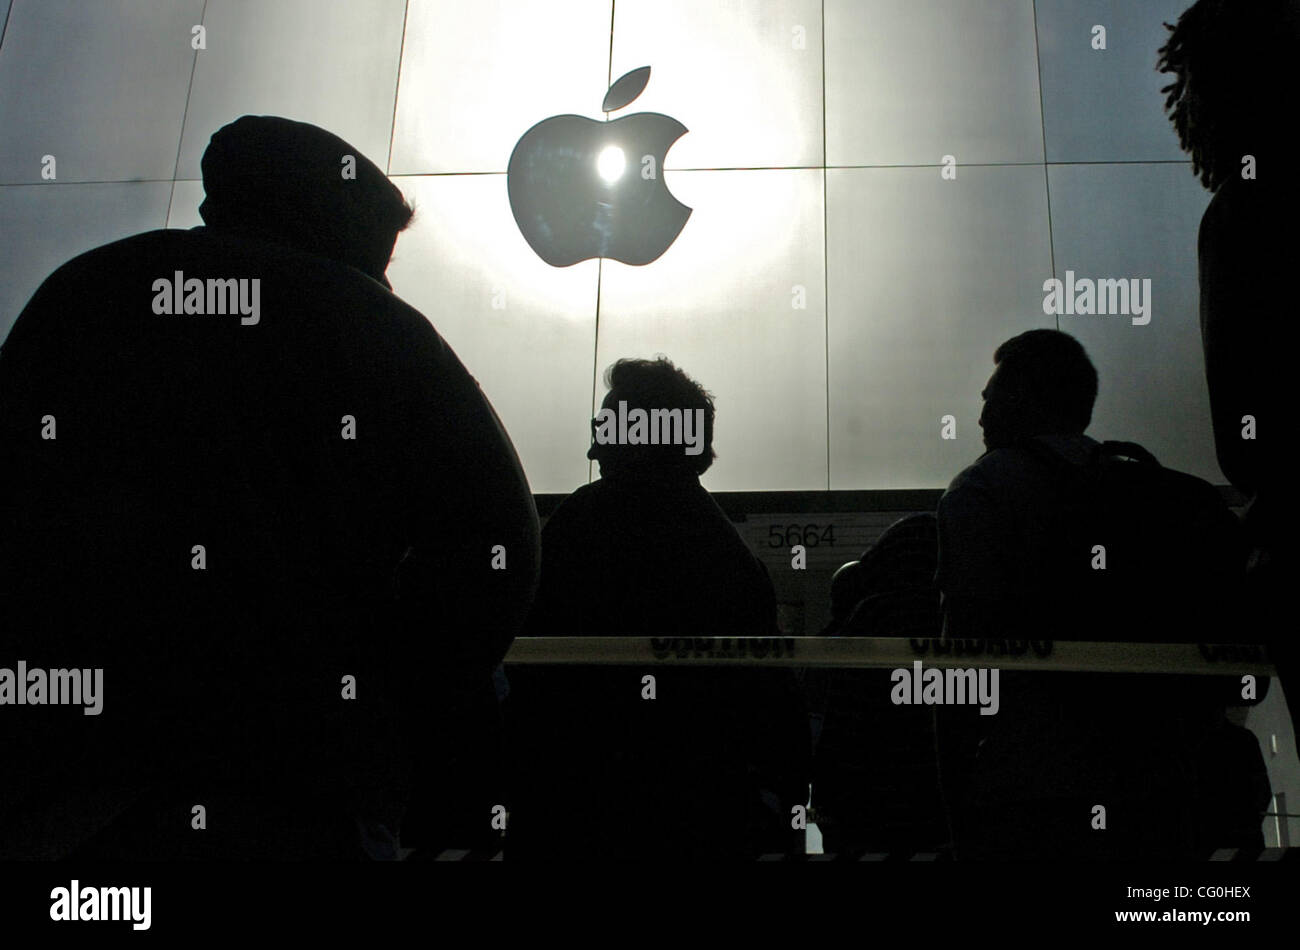 Hundreds of people wait in line out in front of the Apple Store to buy the iPhone on Friday June 29, 2007 in Emeryville. - Stock Image